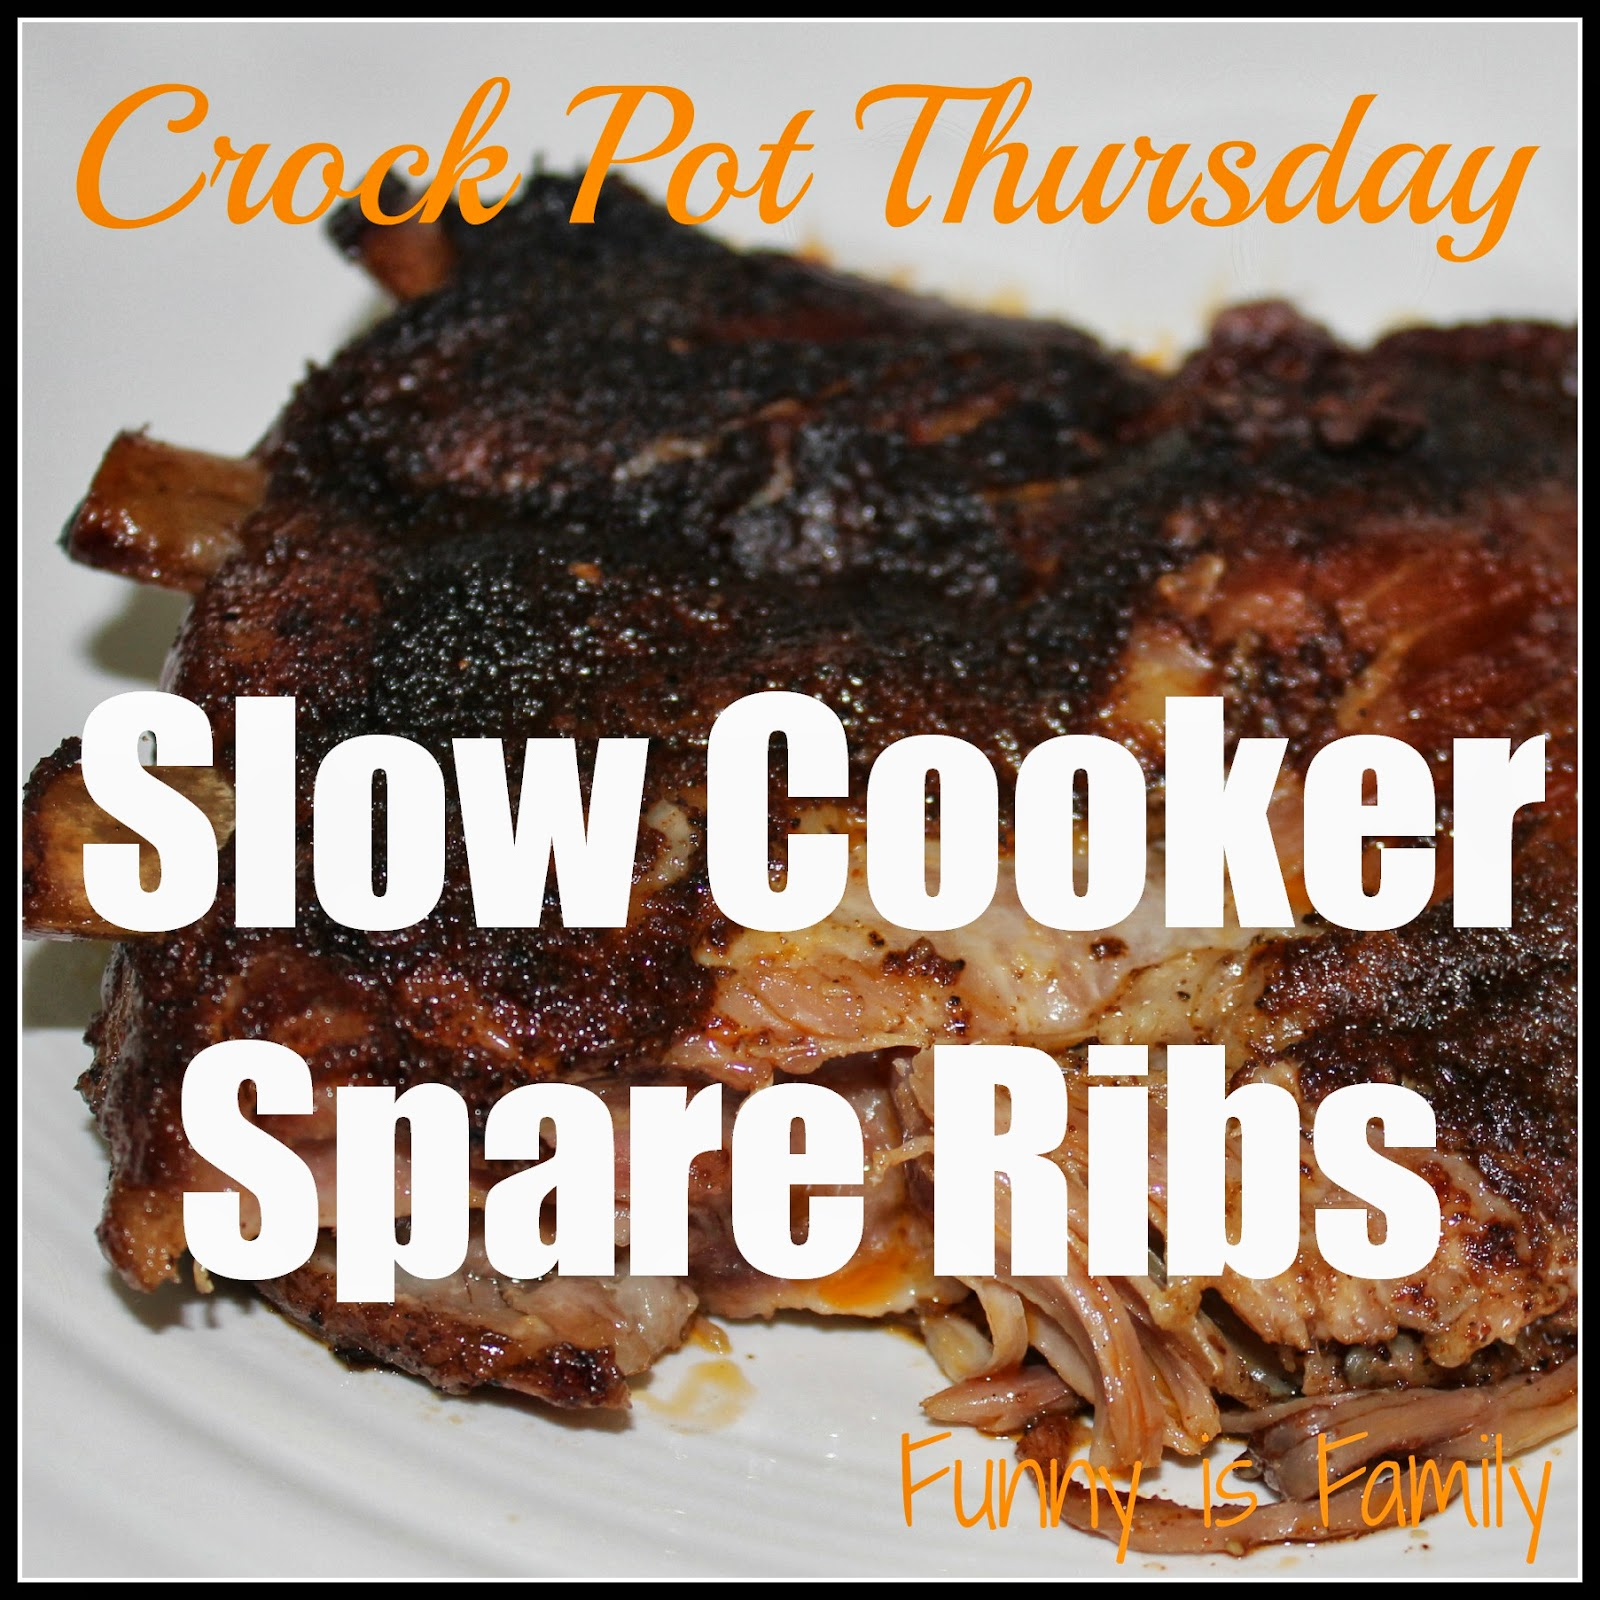 Crock Pot Thursday: Slow Cooker Spare Ribs